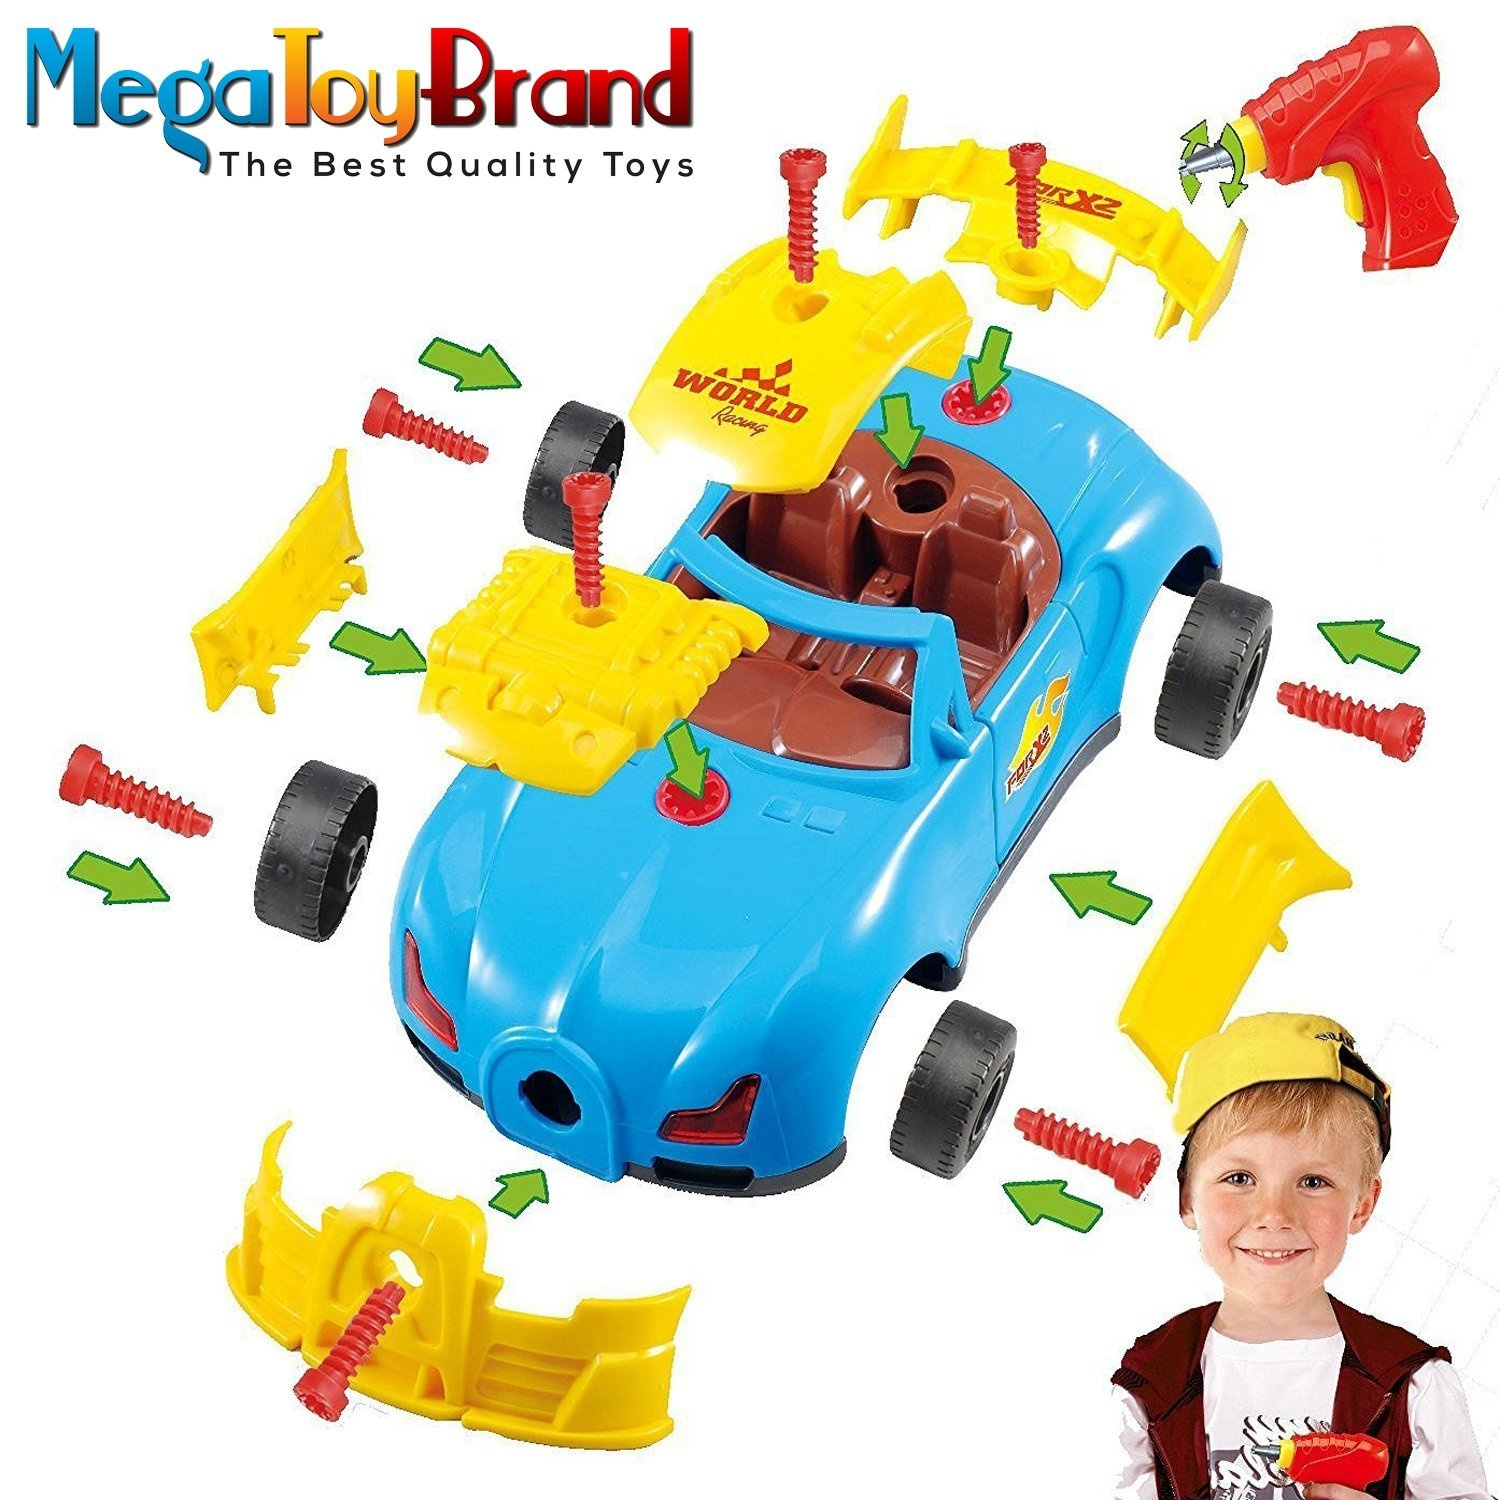 e365a06805c3 Megatoybrand Take Apart Toy Racing Car – Construction Toy Kit For ...